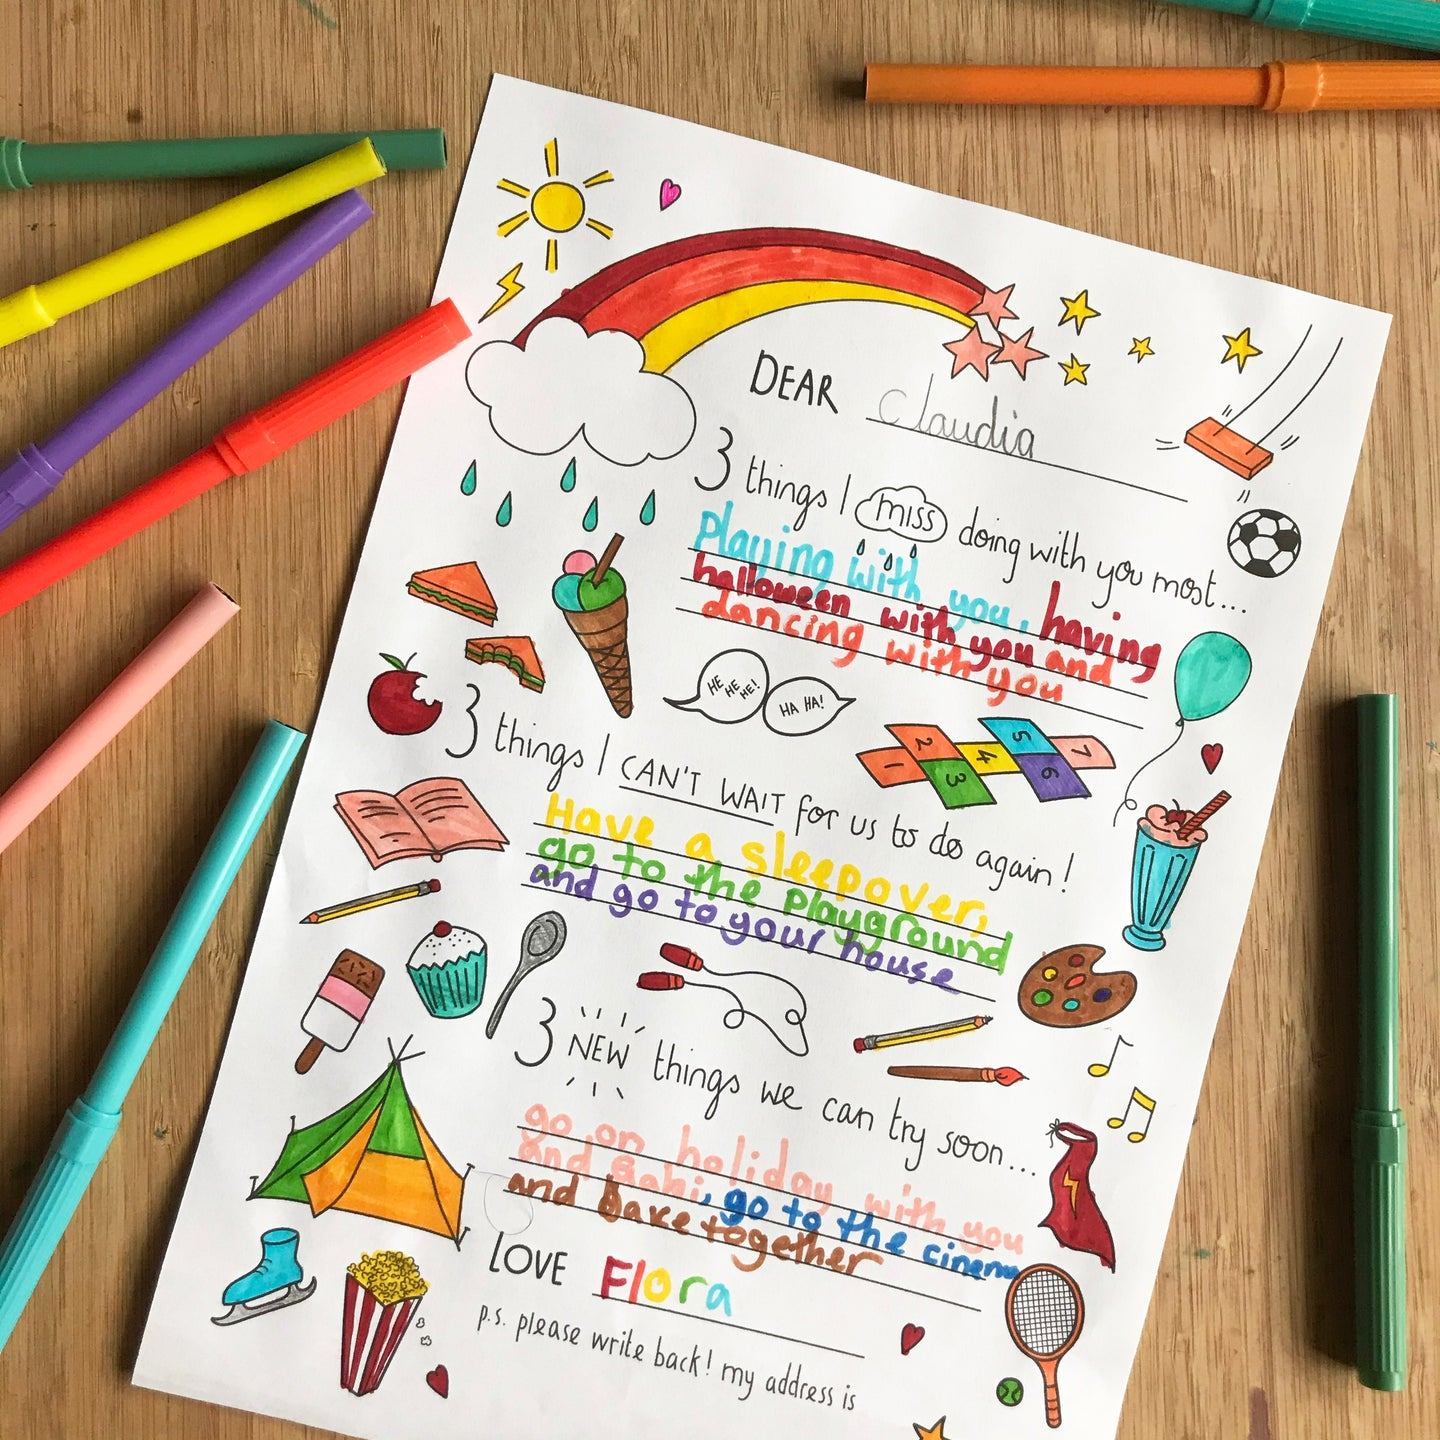 Post Pals lockdown letter - FREE colouring download